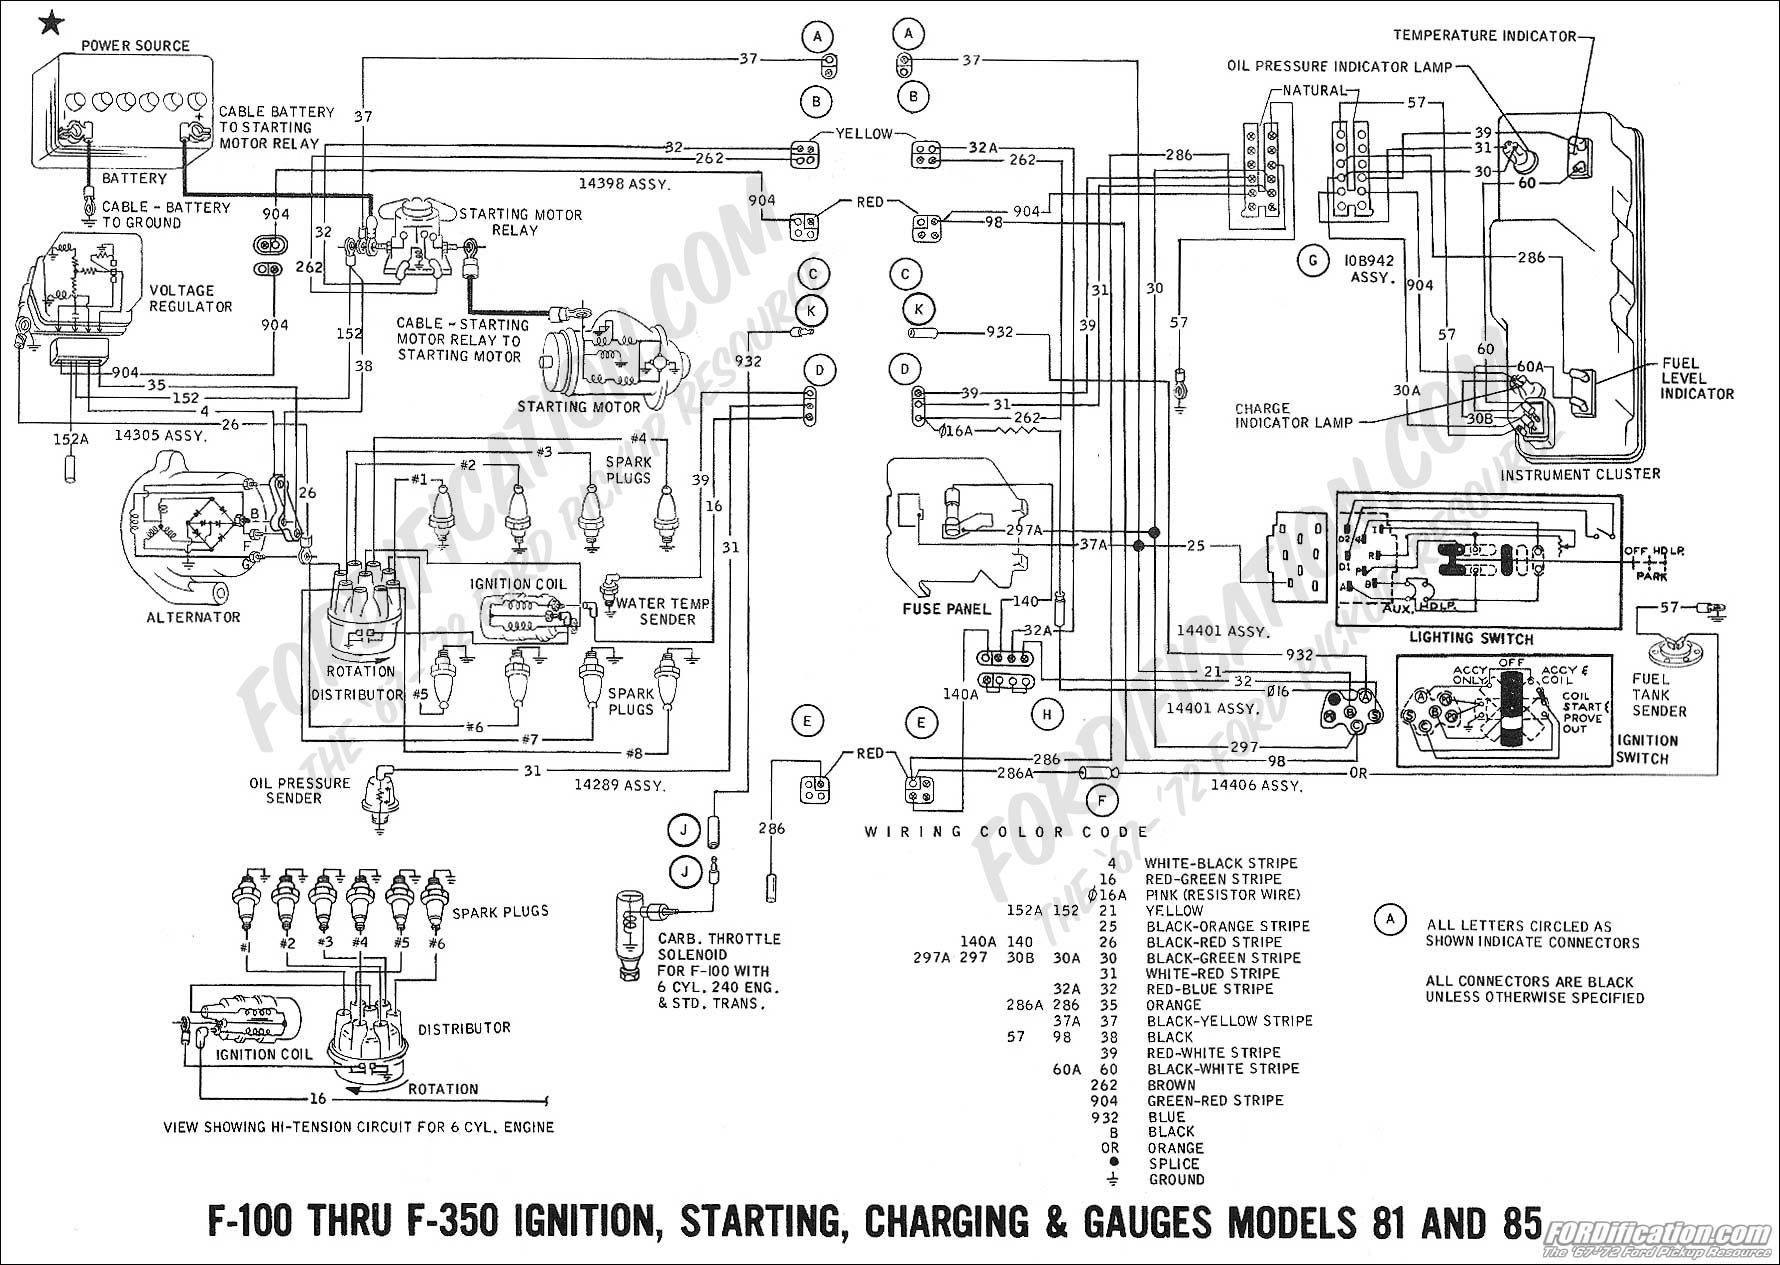 hight resolution of ford truck technical drawings and schematics section h wiring1969 f 100 thru f 350 ignition